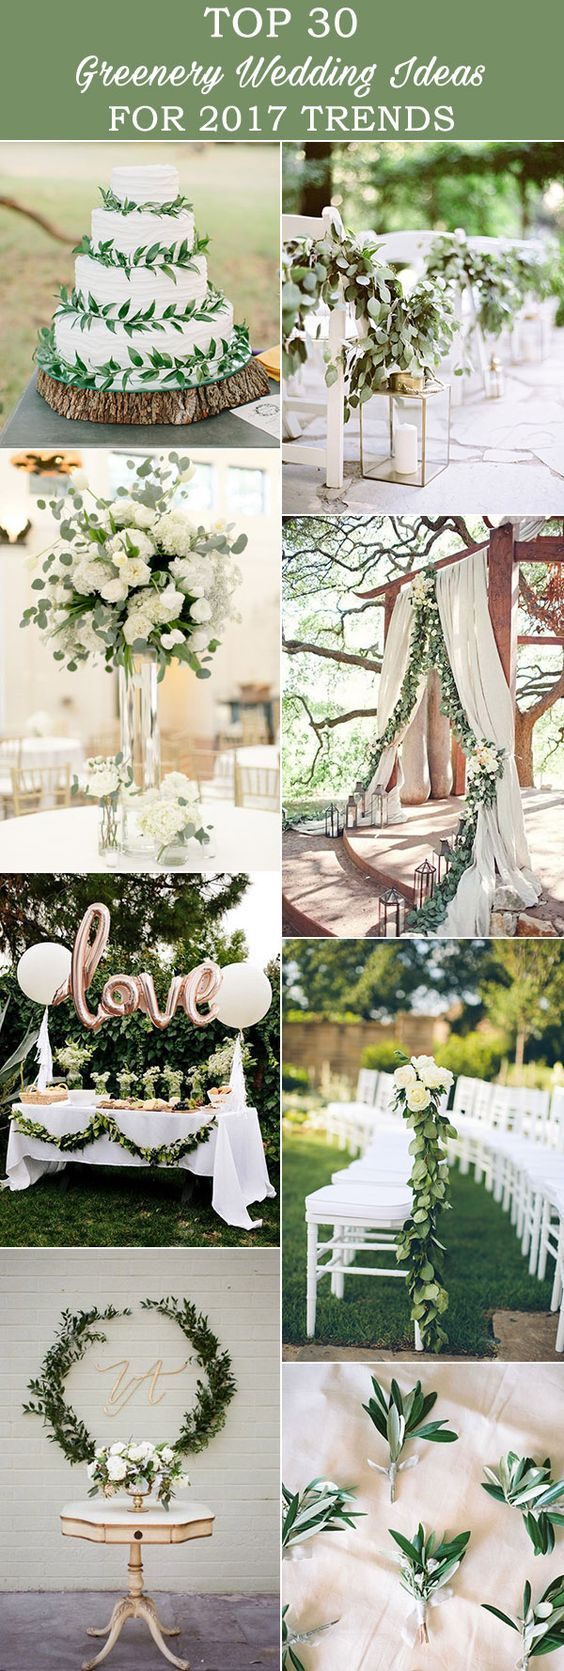 2017 Wedding trends - Adding Greenery wedding ideas